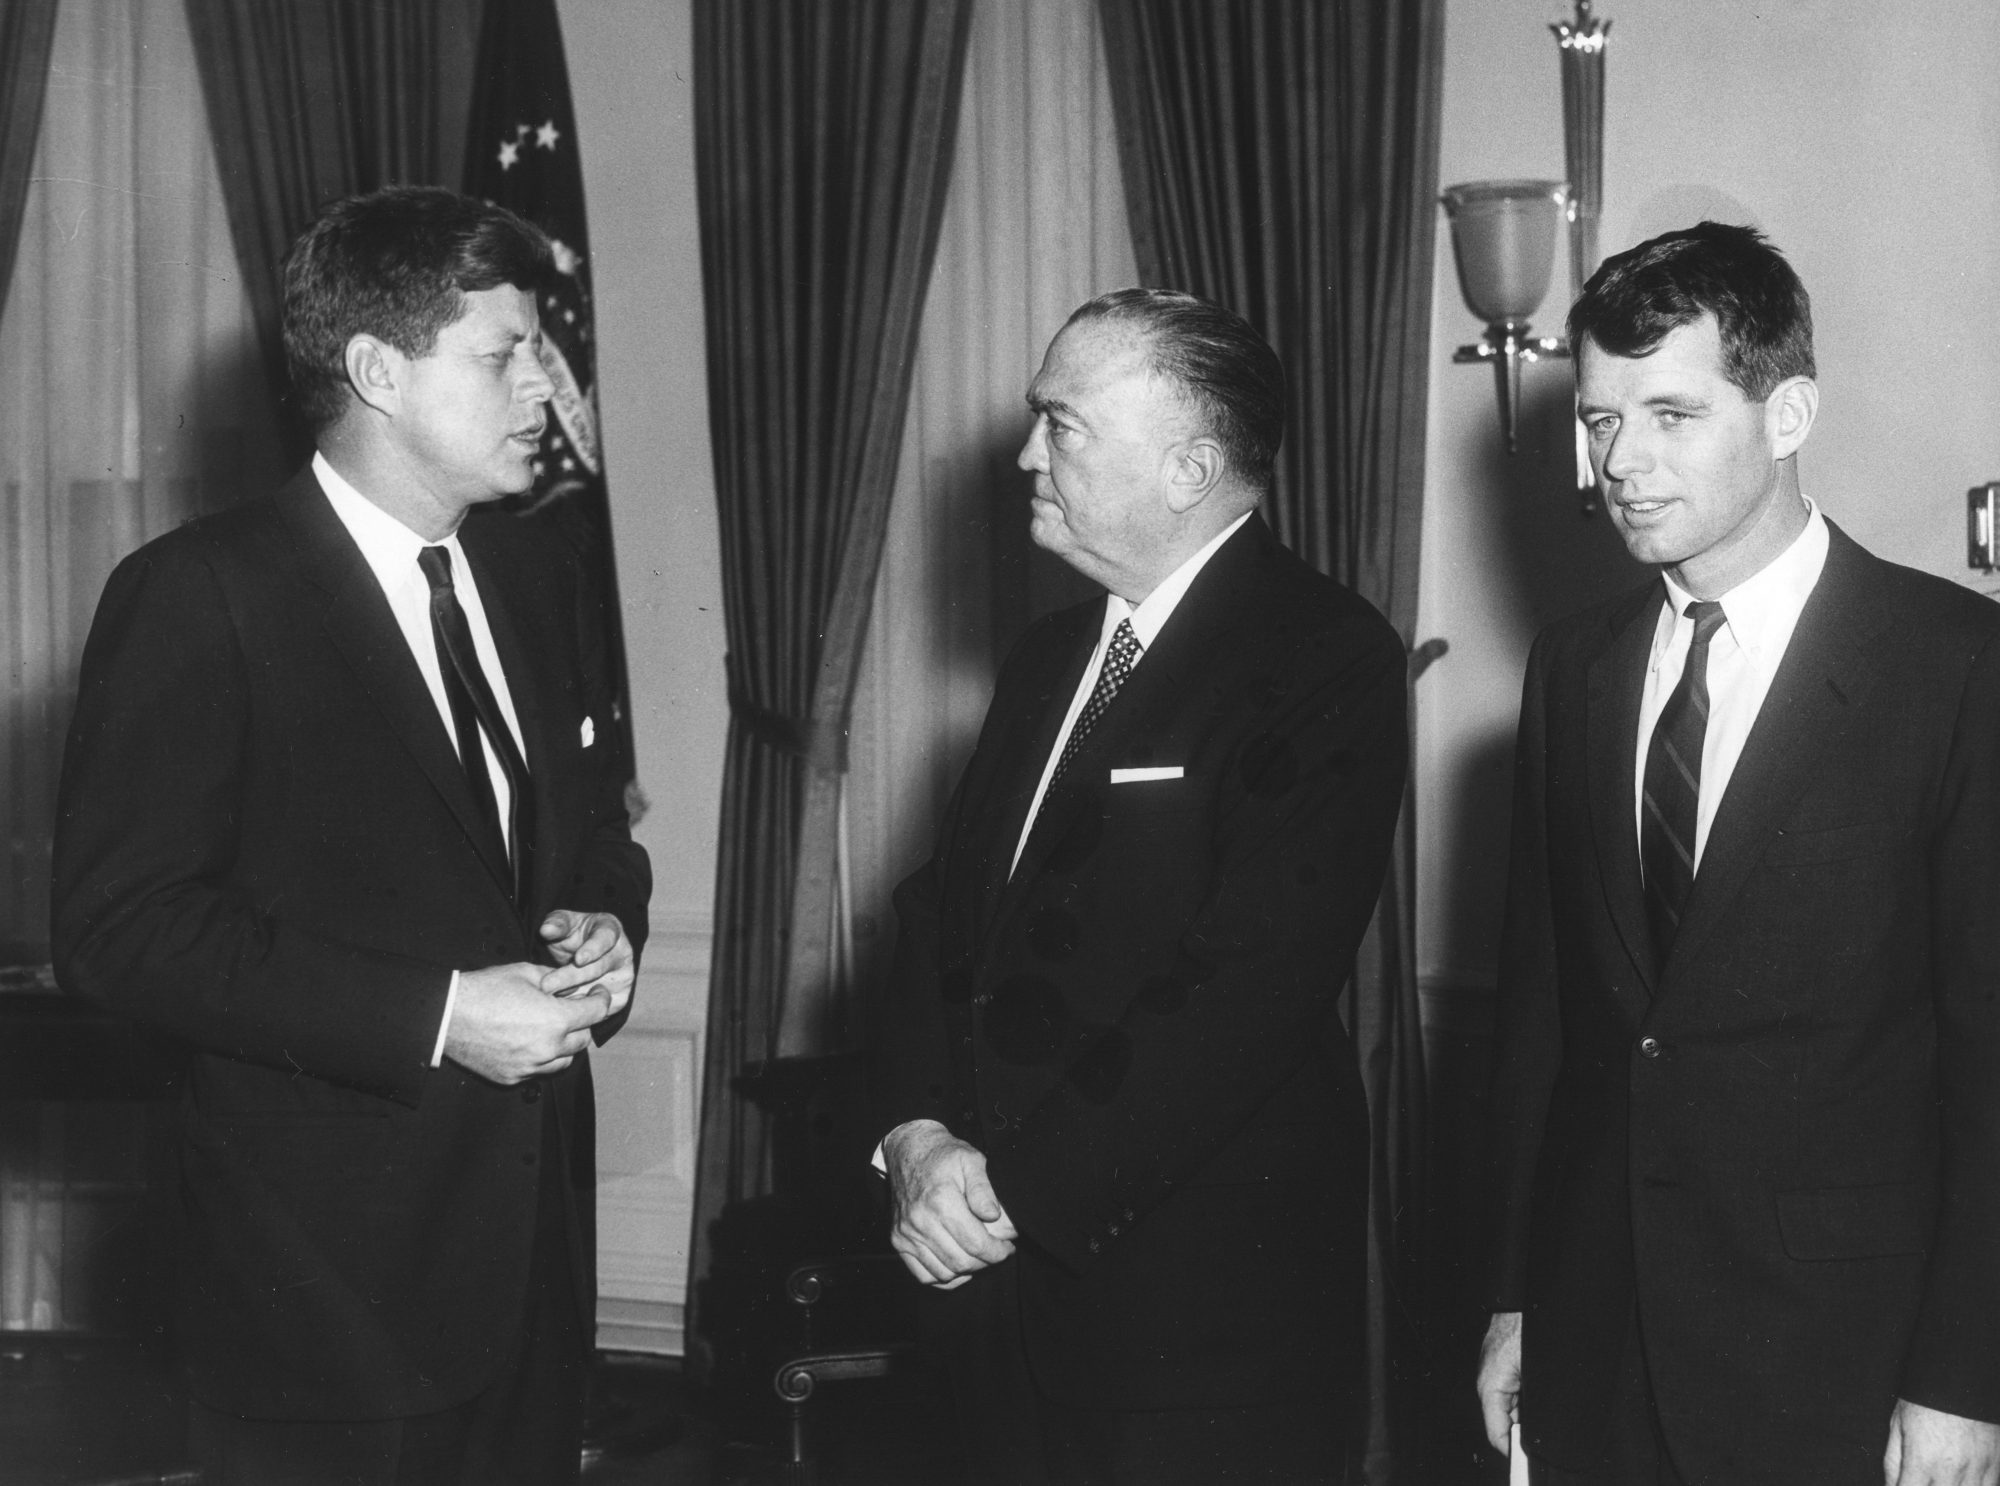 JFK, Hoover, & RFK In The White House